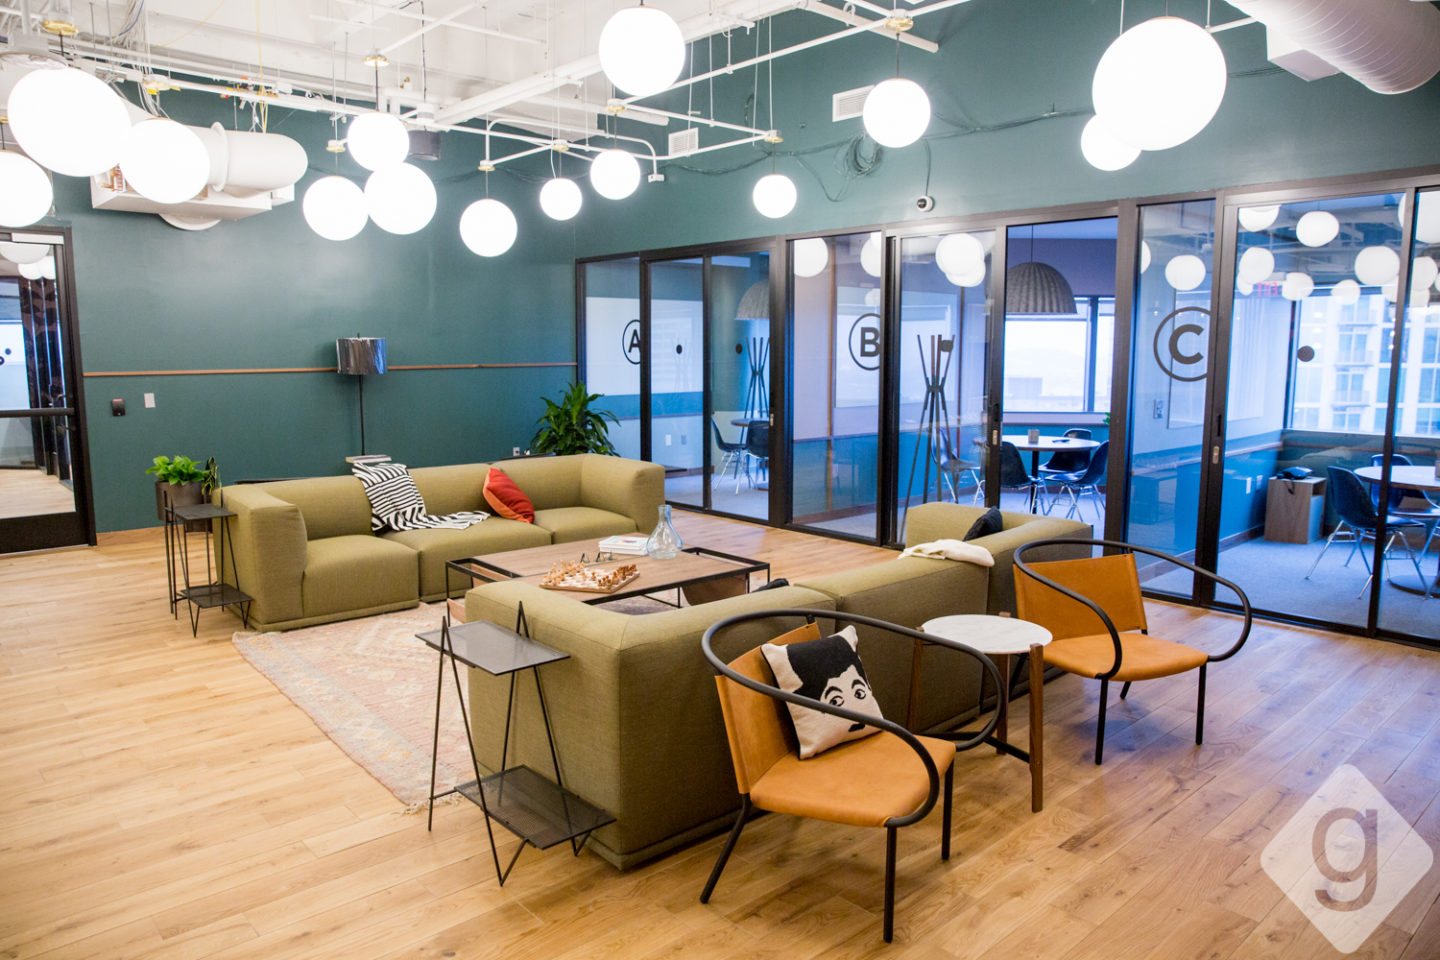 A Look Inside WeWork A CoWorking Space in Downtown